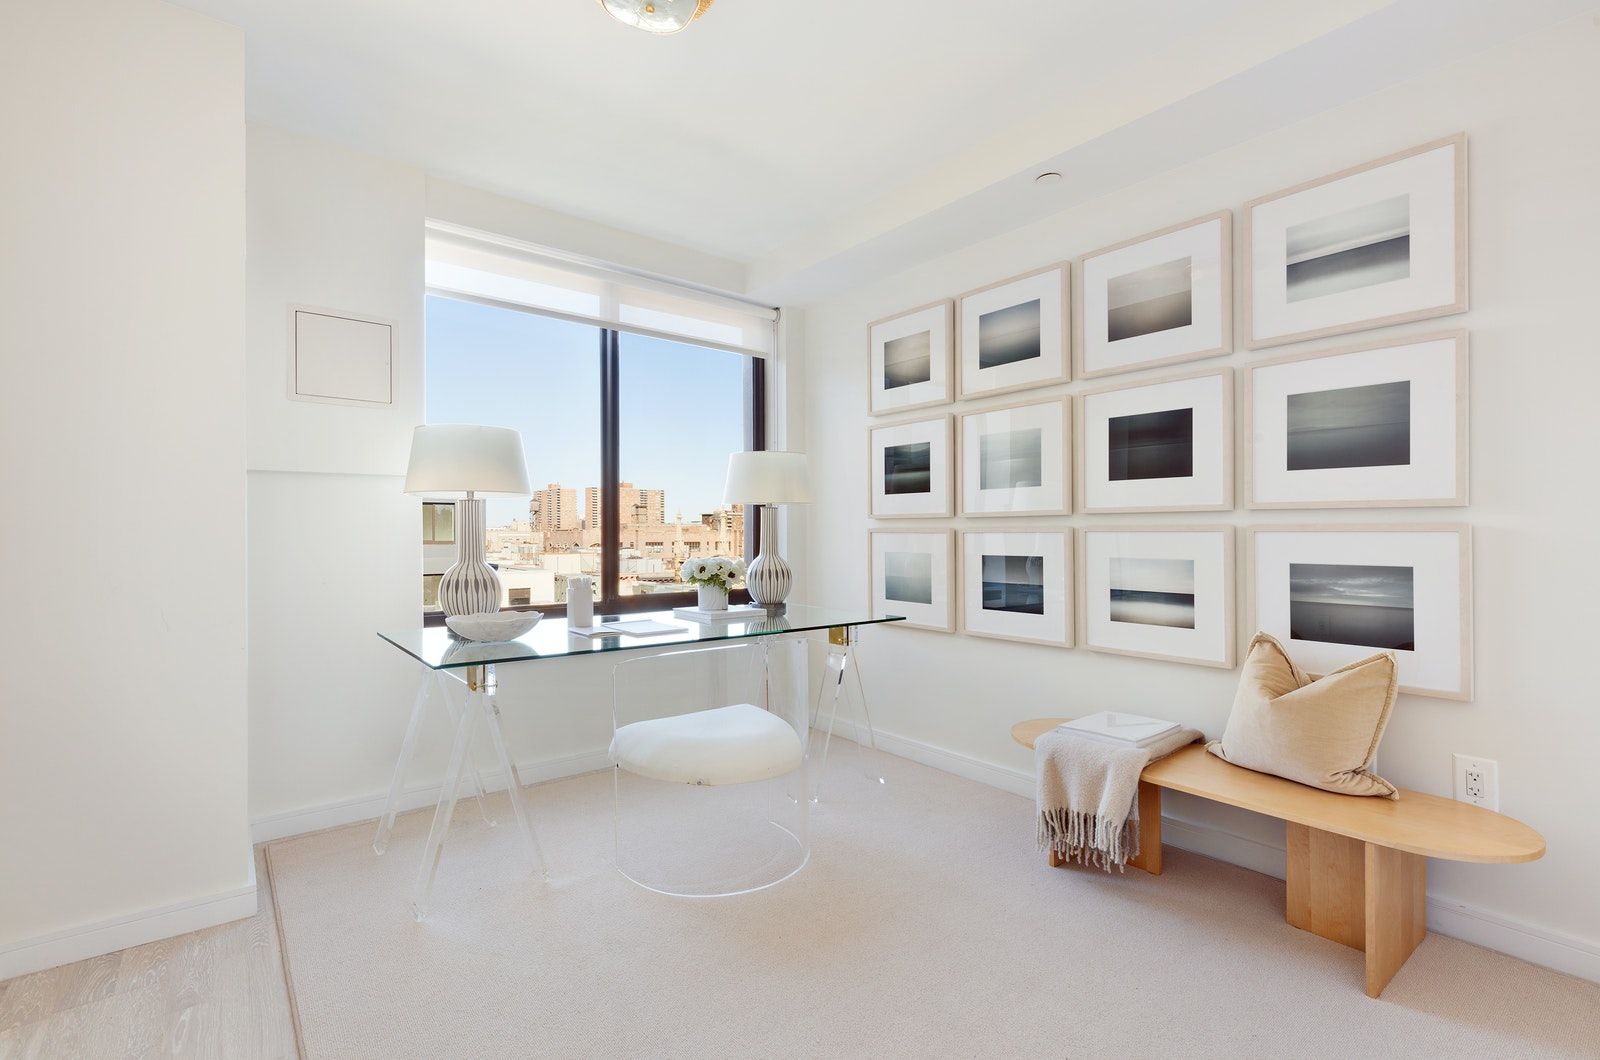 2351 Adam Clayton Powell 609, Upper Manhattan, NYC, 10030, $1,075,000, Property For Sale, Halstead Real Estate, Photo 4